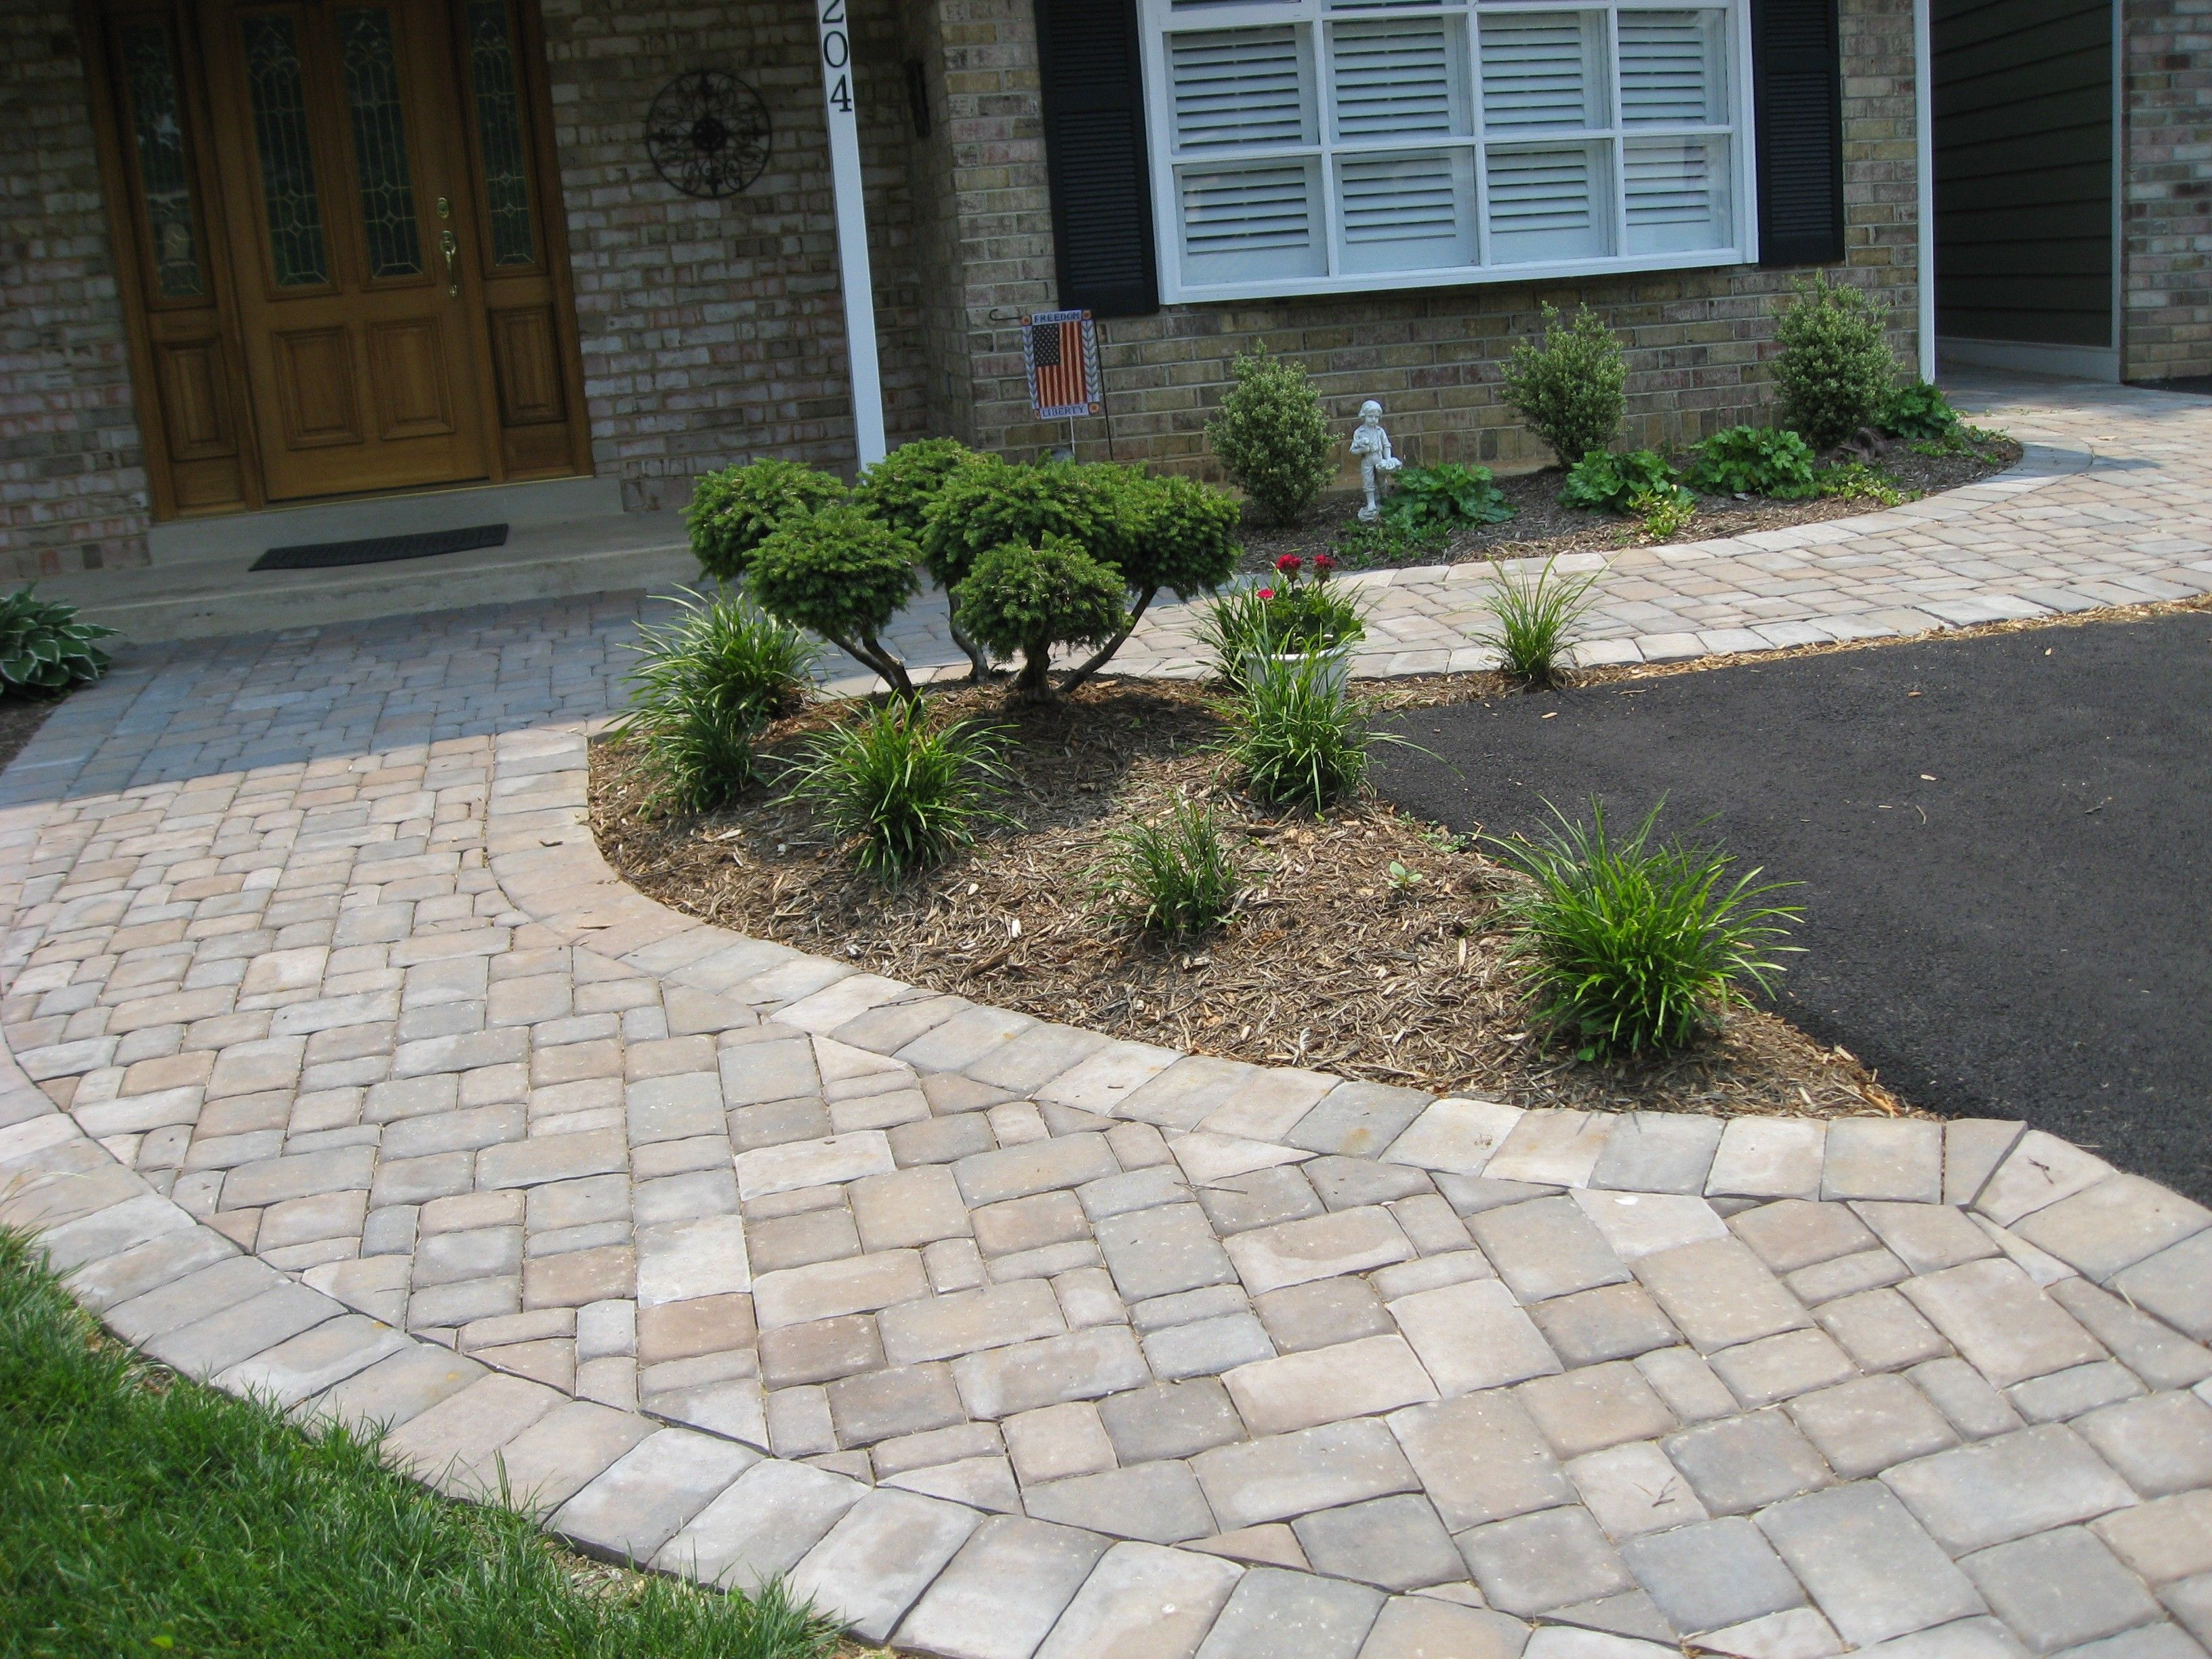 Perfect Exterior Curved Paver Walkway Without Cutting Installing A Paver Walkway  Brick Paver Walkway Designs How To Do A Paver Walkway Paver Walkway DIY  Project: ...